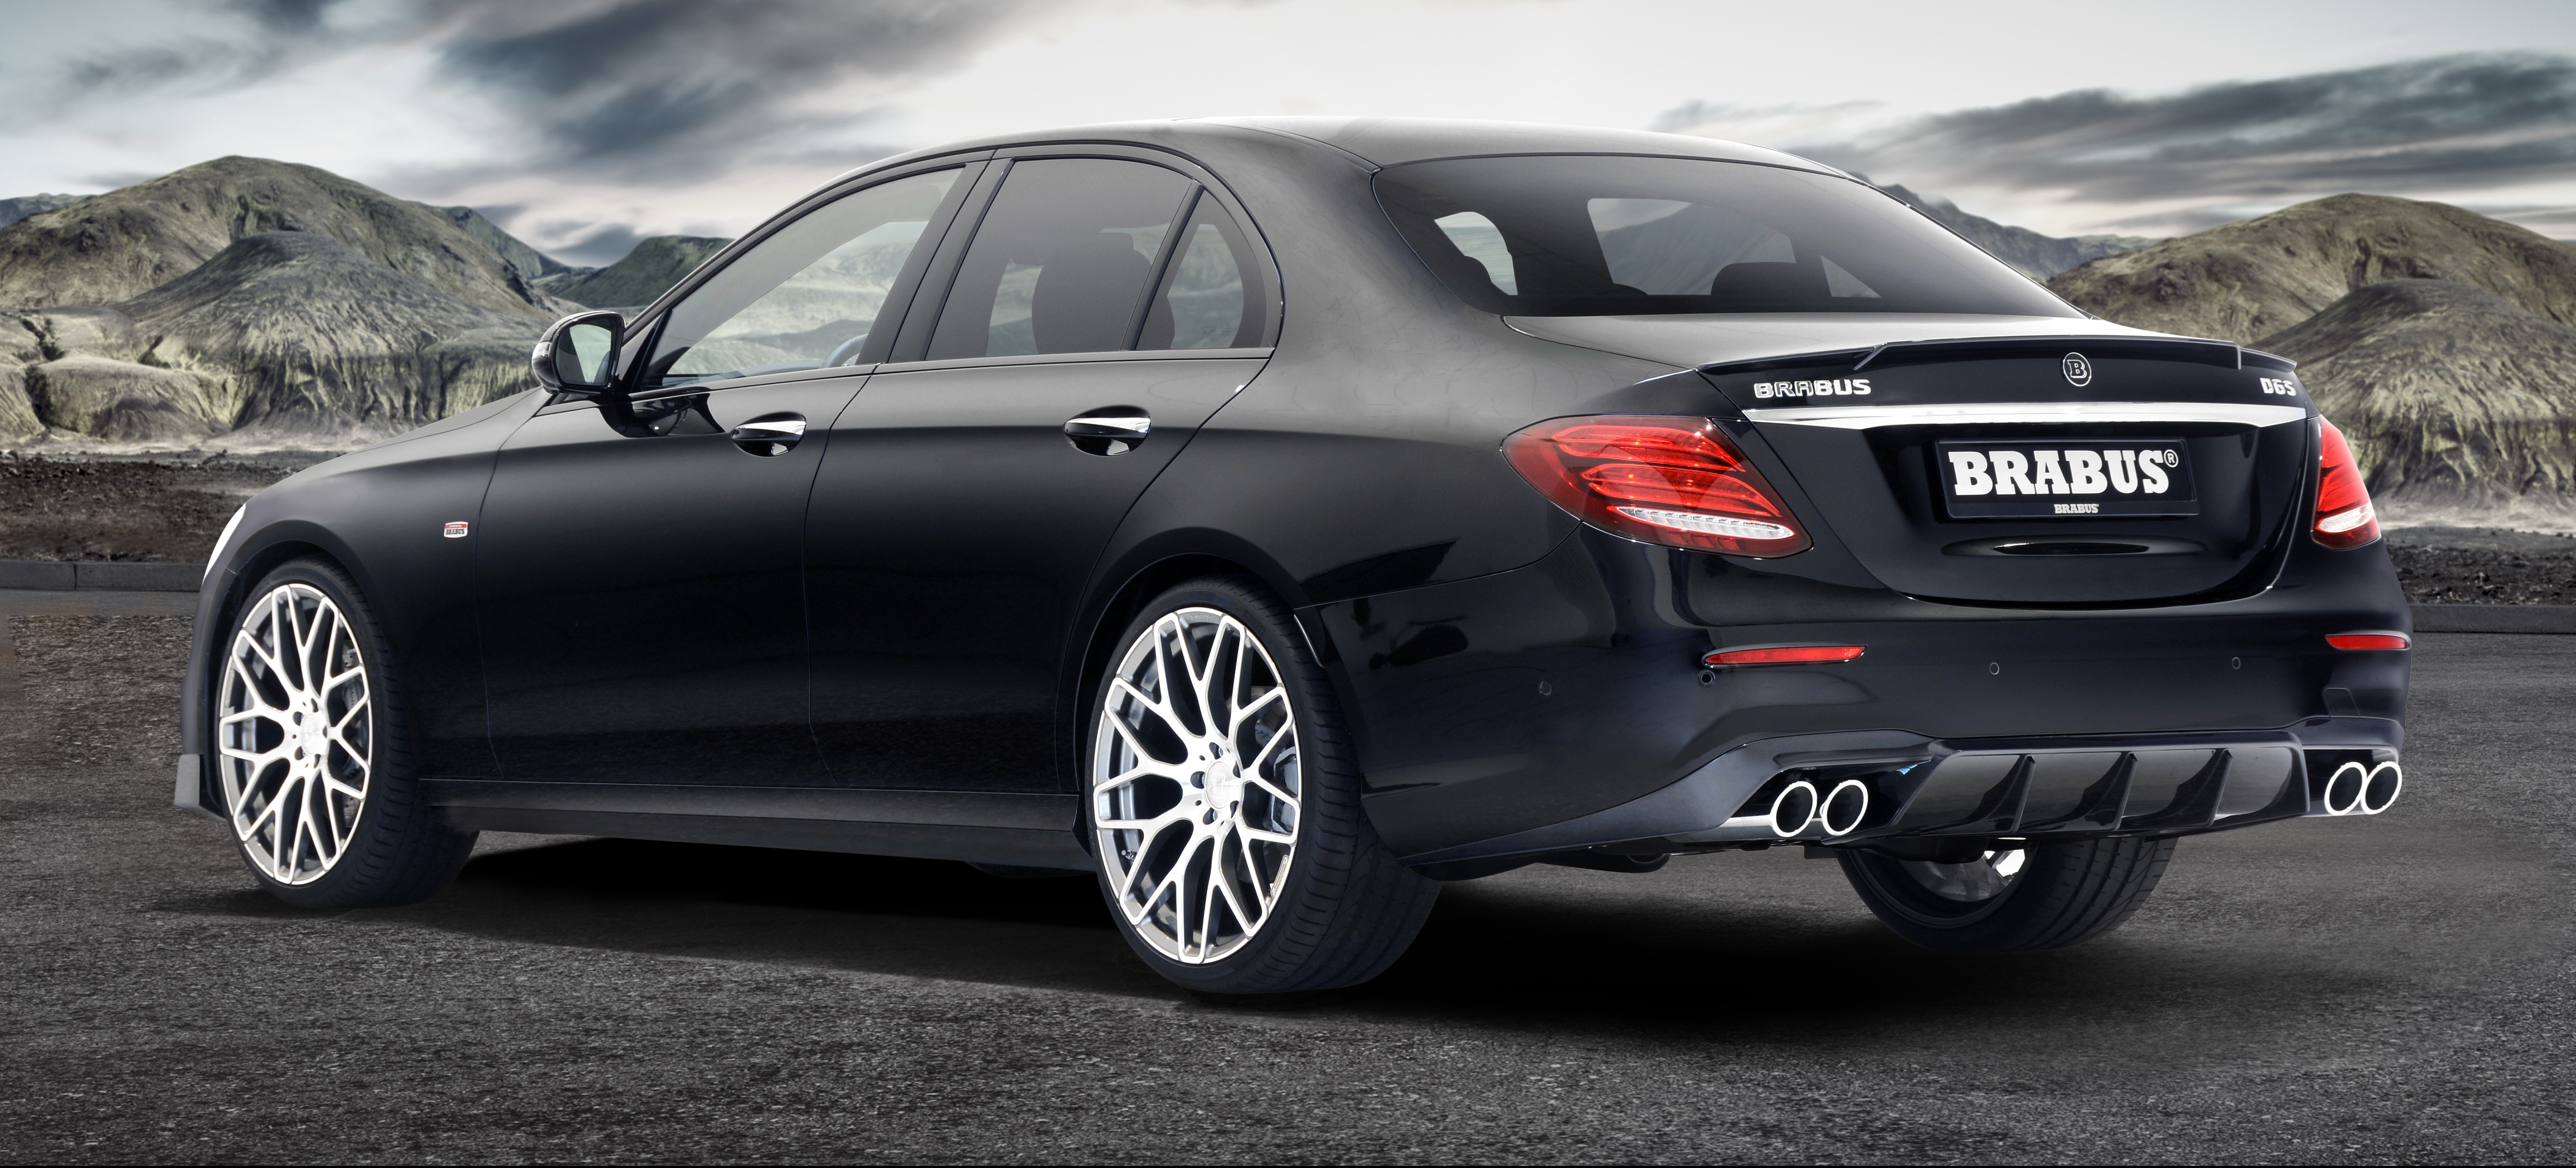 Brabus bodykit, tuning for the W213 Mercedes E-Class Image